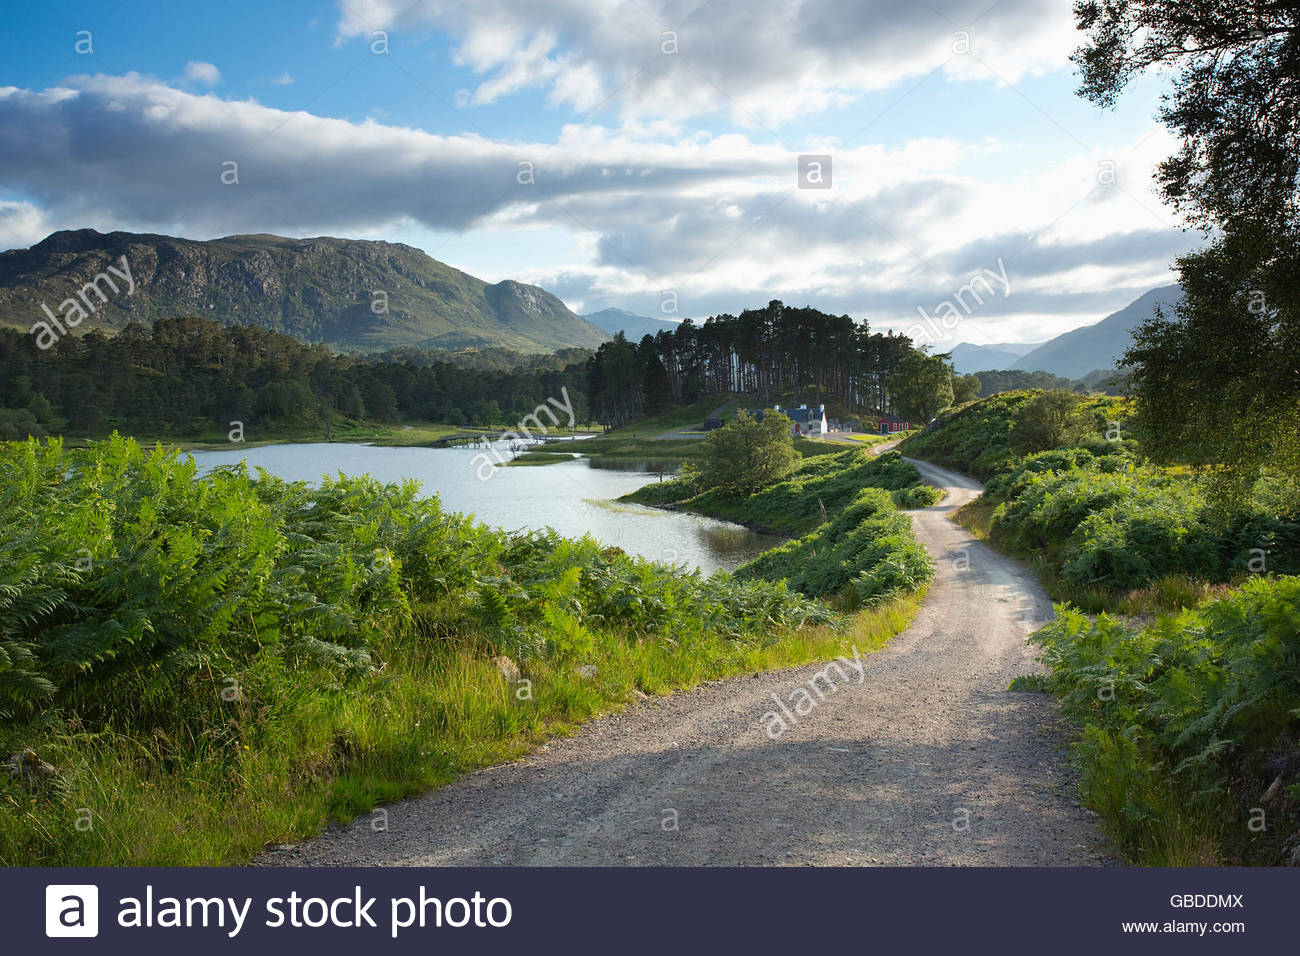 A gravel track leading to a cottage by the side of Loch Affric in Glen Affric, Highlands of Scotland. - Stock Image